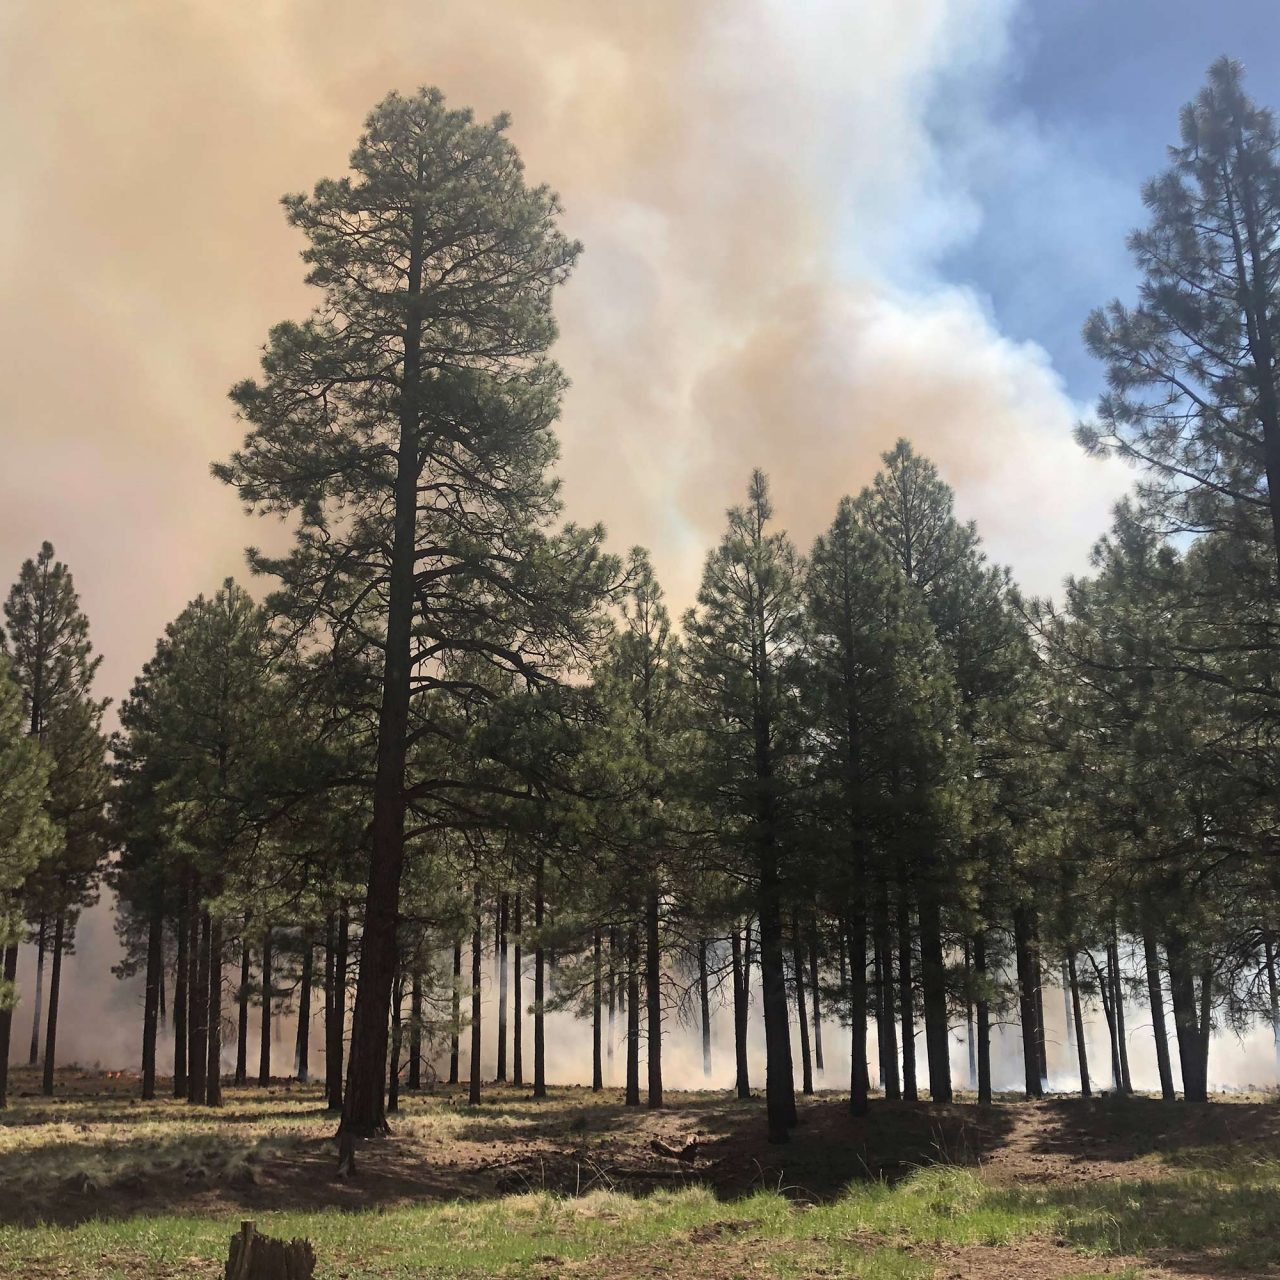 Be Aware of Fire Restrictions and Prescribed Burns This Summer